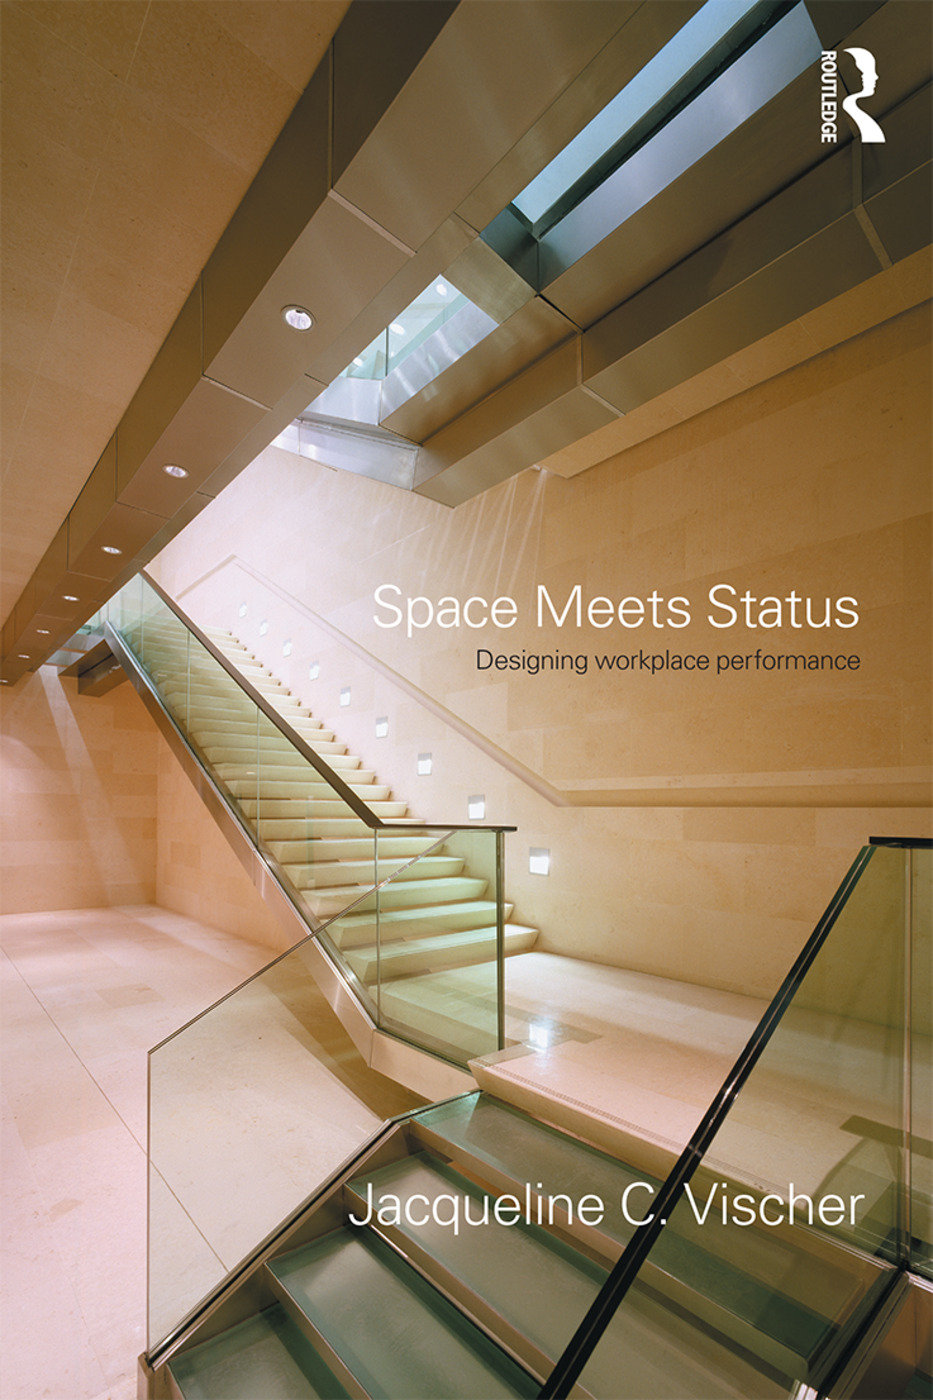 Space Meets Status: Designing Workplace Performance (Paperback) book cover